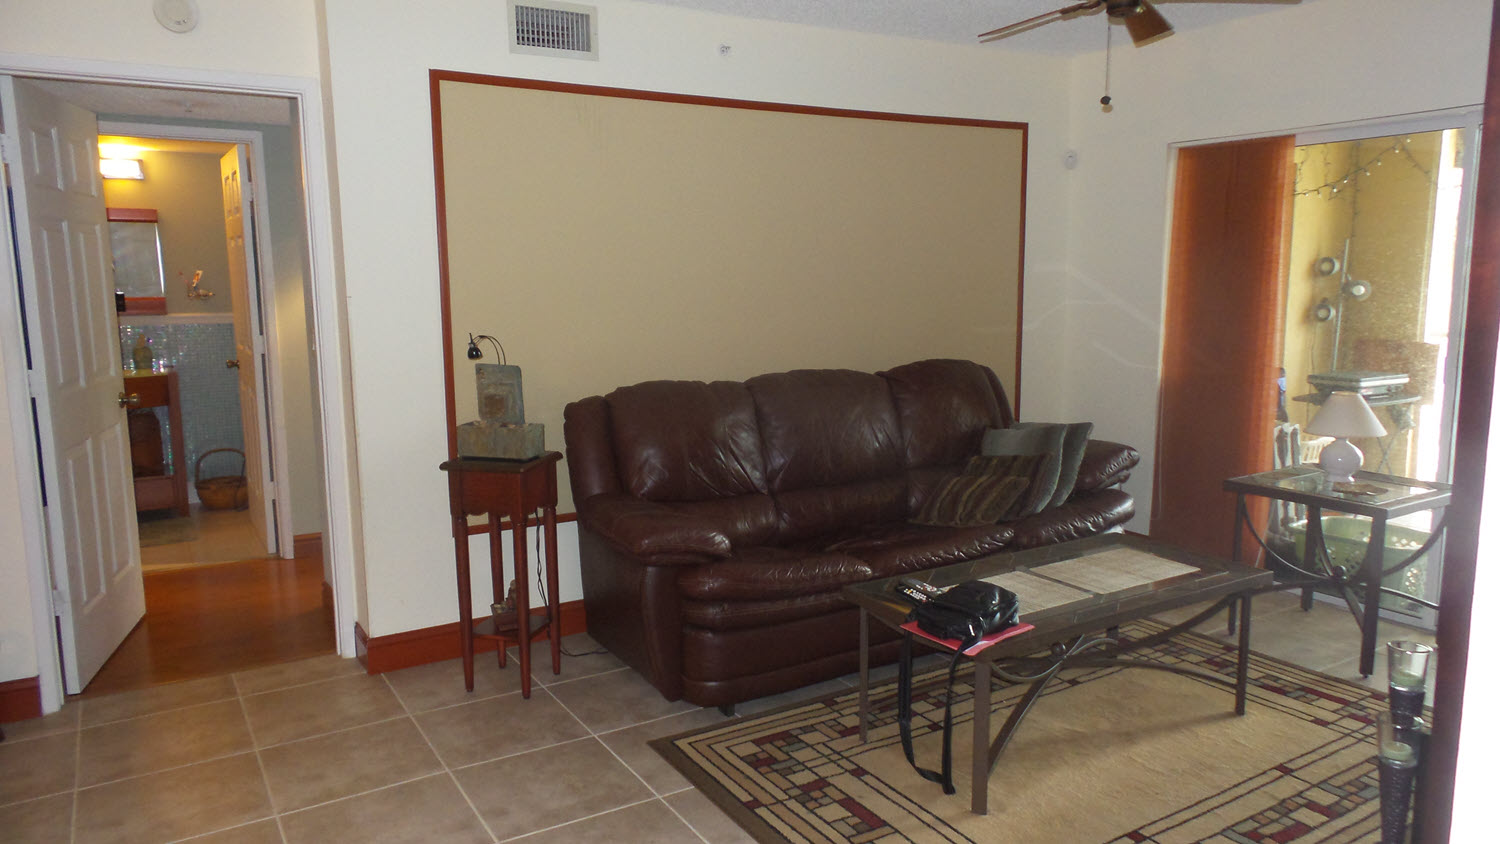 living room royal grand 2600-212 before painting